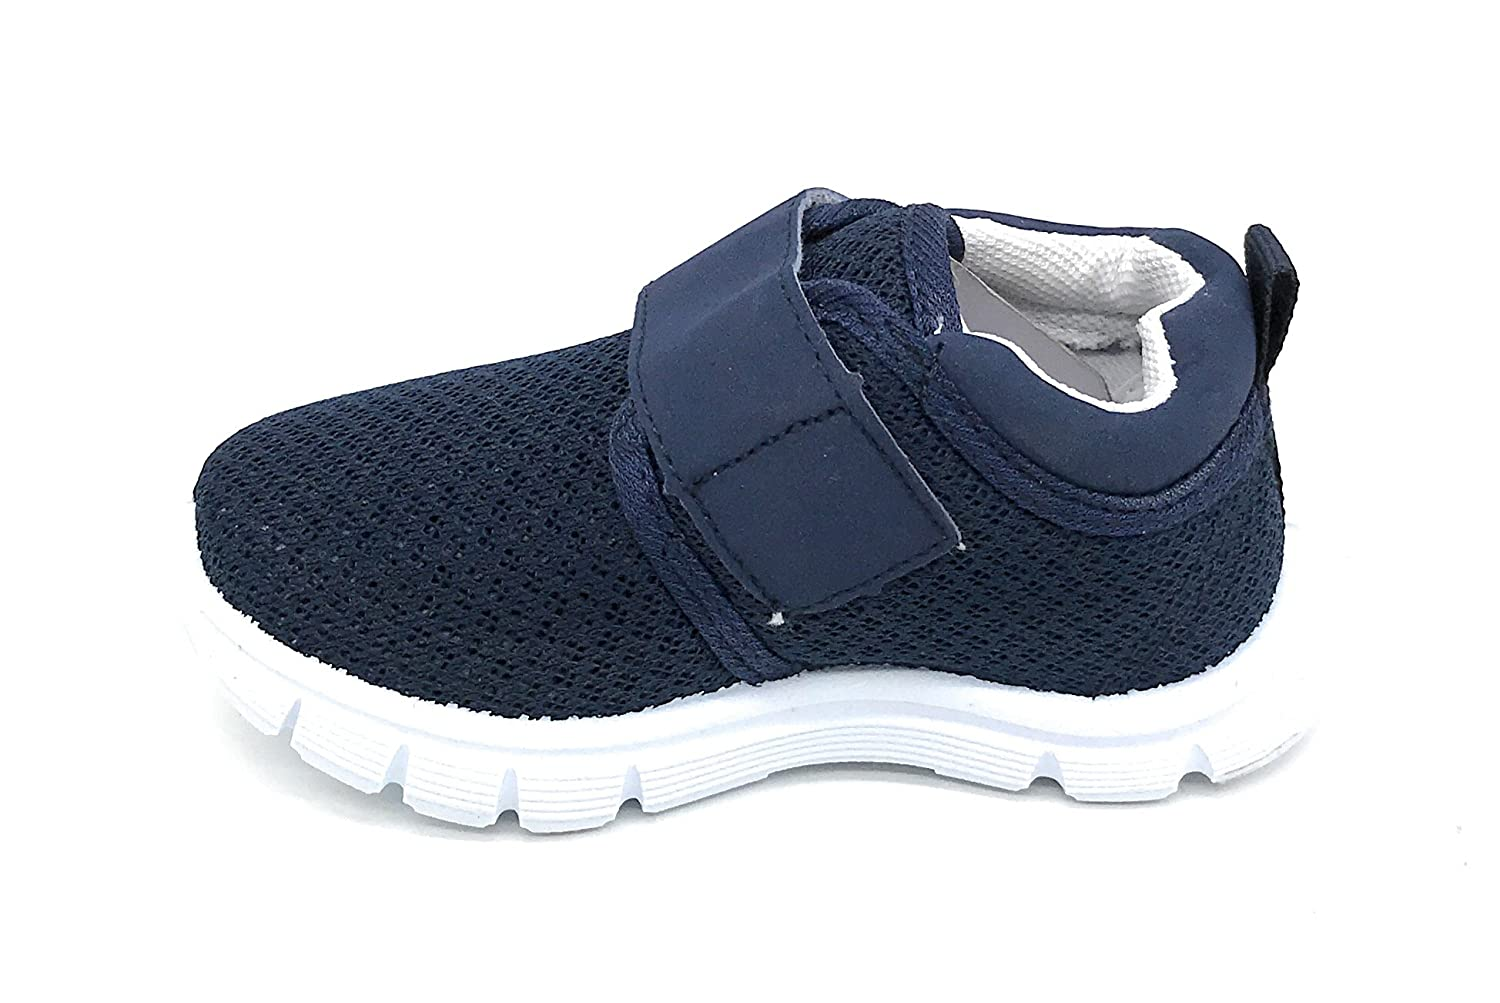 Blue Berry Babys Boys Girls Casual Light Weight Breathable Strap Sneakers Running Shoe